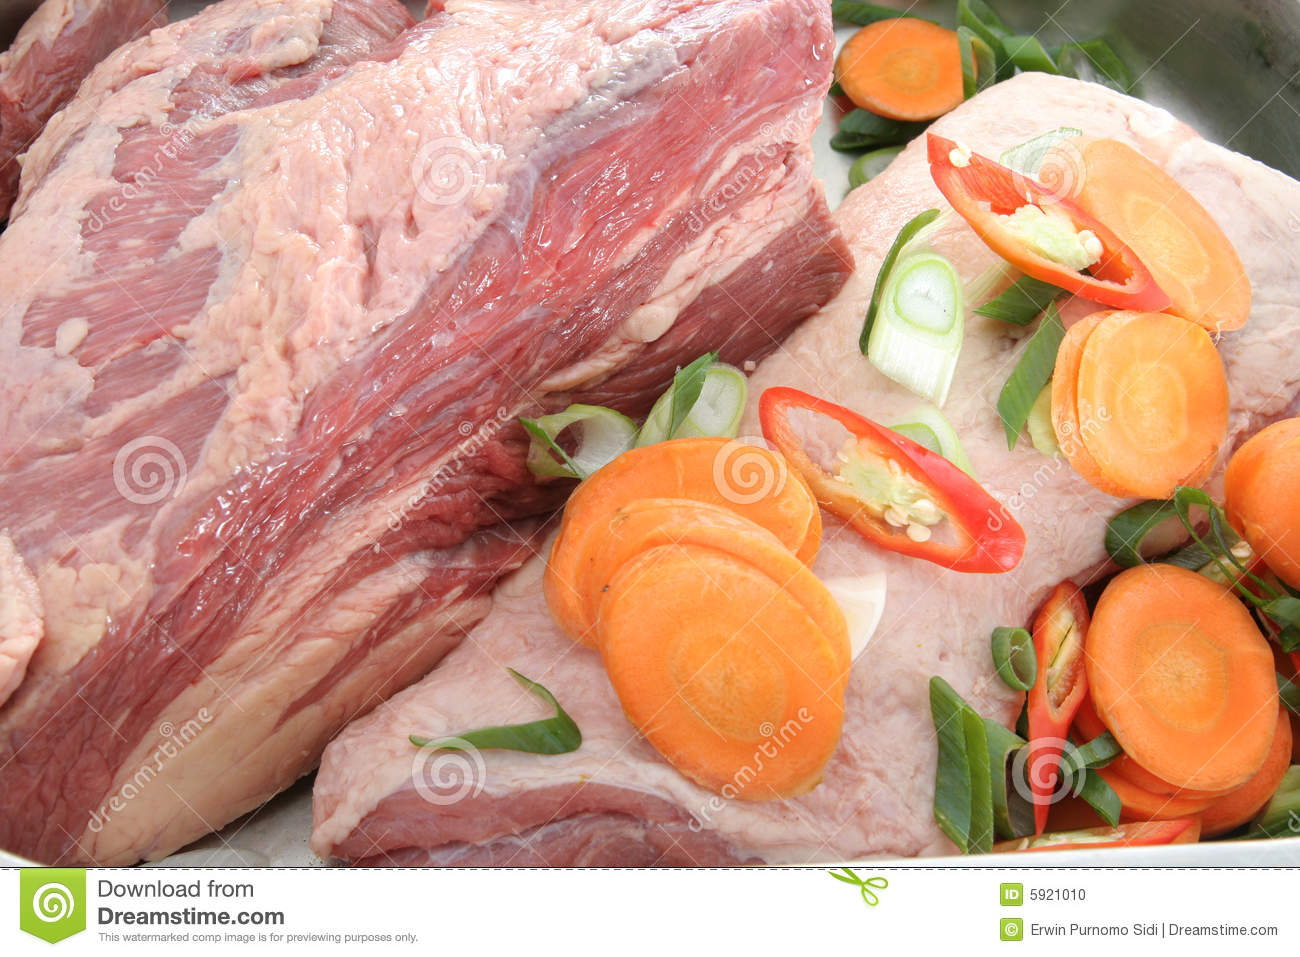 Meat and ingredients